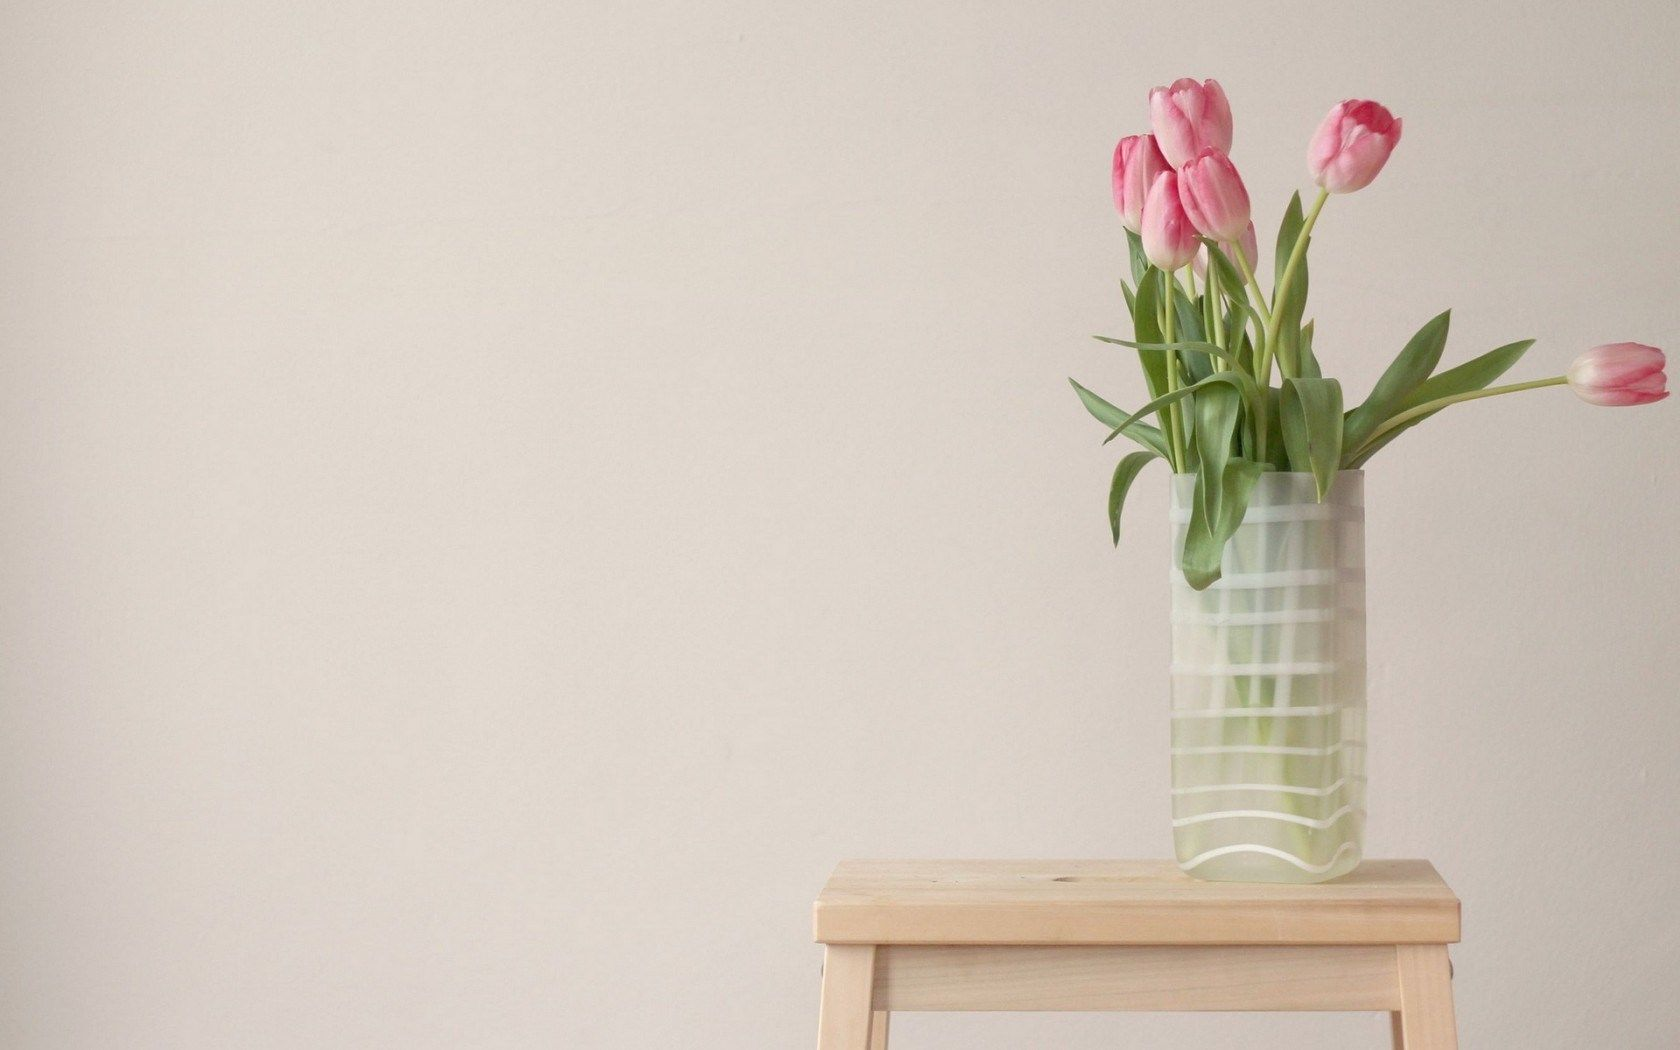 Vase, Awesome Flowers, Pink Tulips, Table   HD Wallpapers